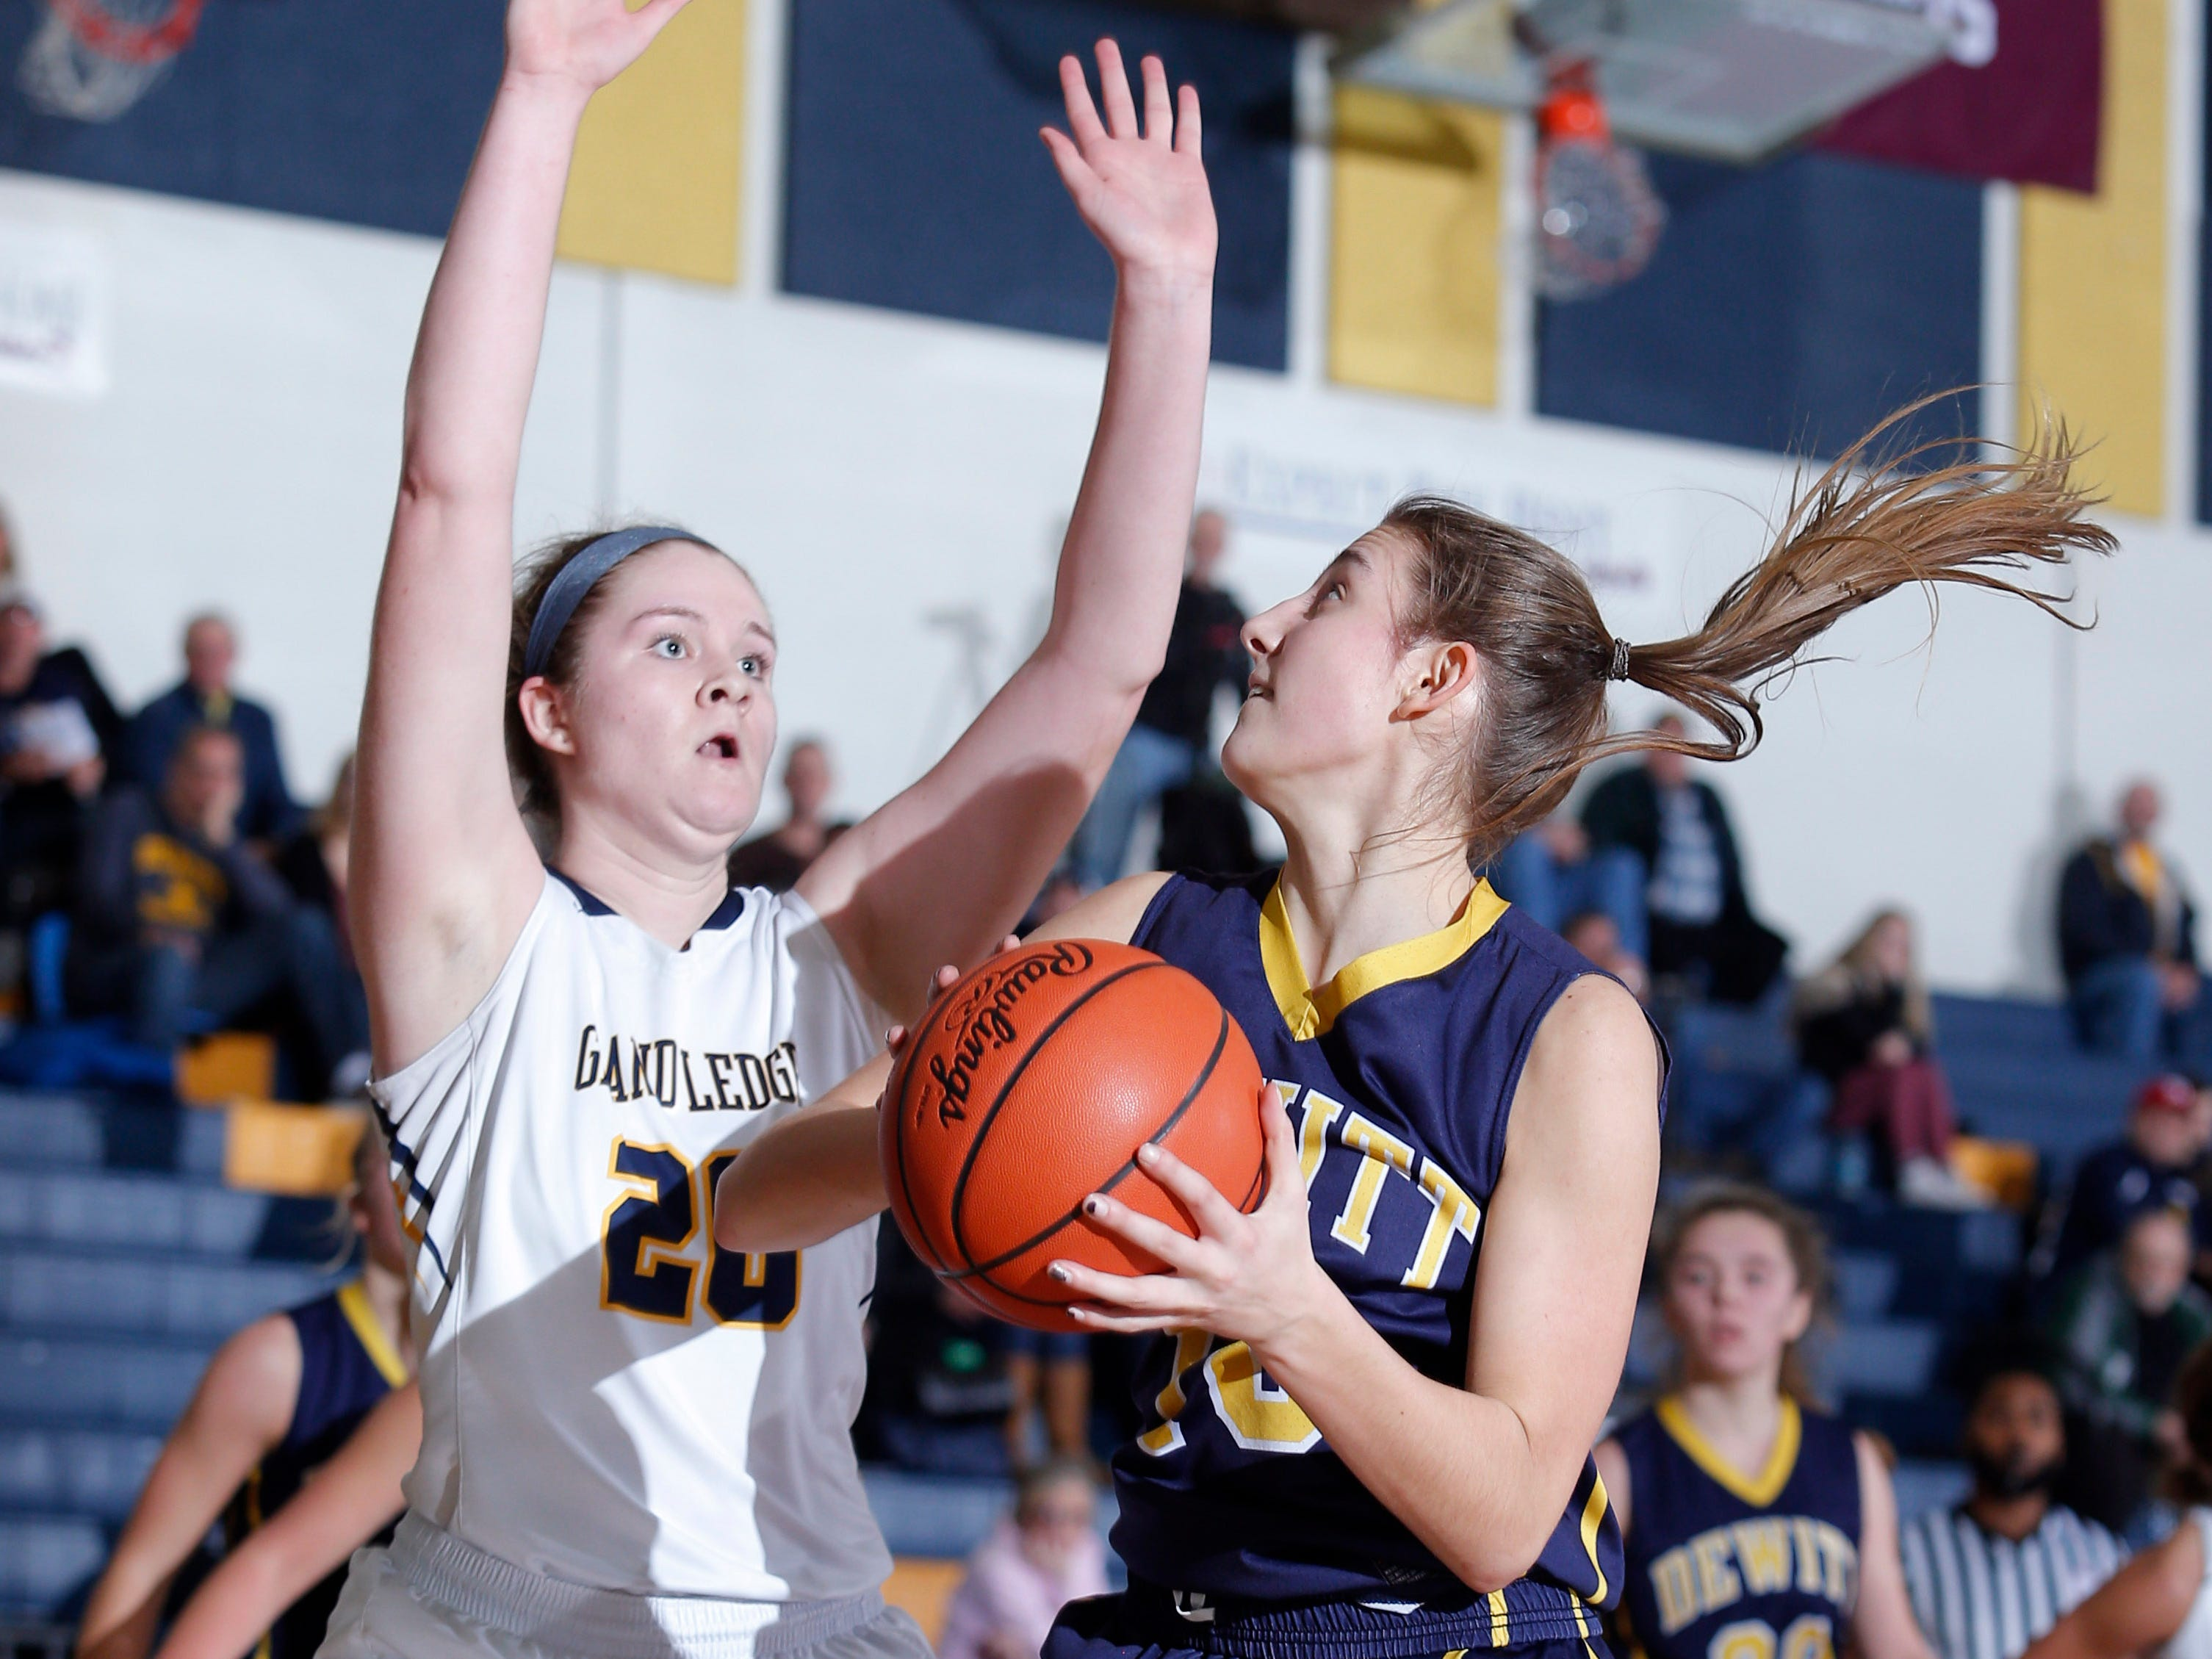 DeWitt's Sydney Mills, right, maneuvers for a shot against Grand Ledge's Courtney Sharland, Tuesday, Jan. 15, 2019, in Grand Ledge, Mich.